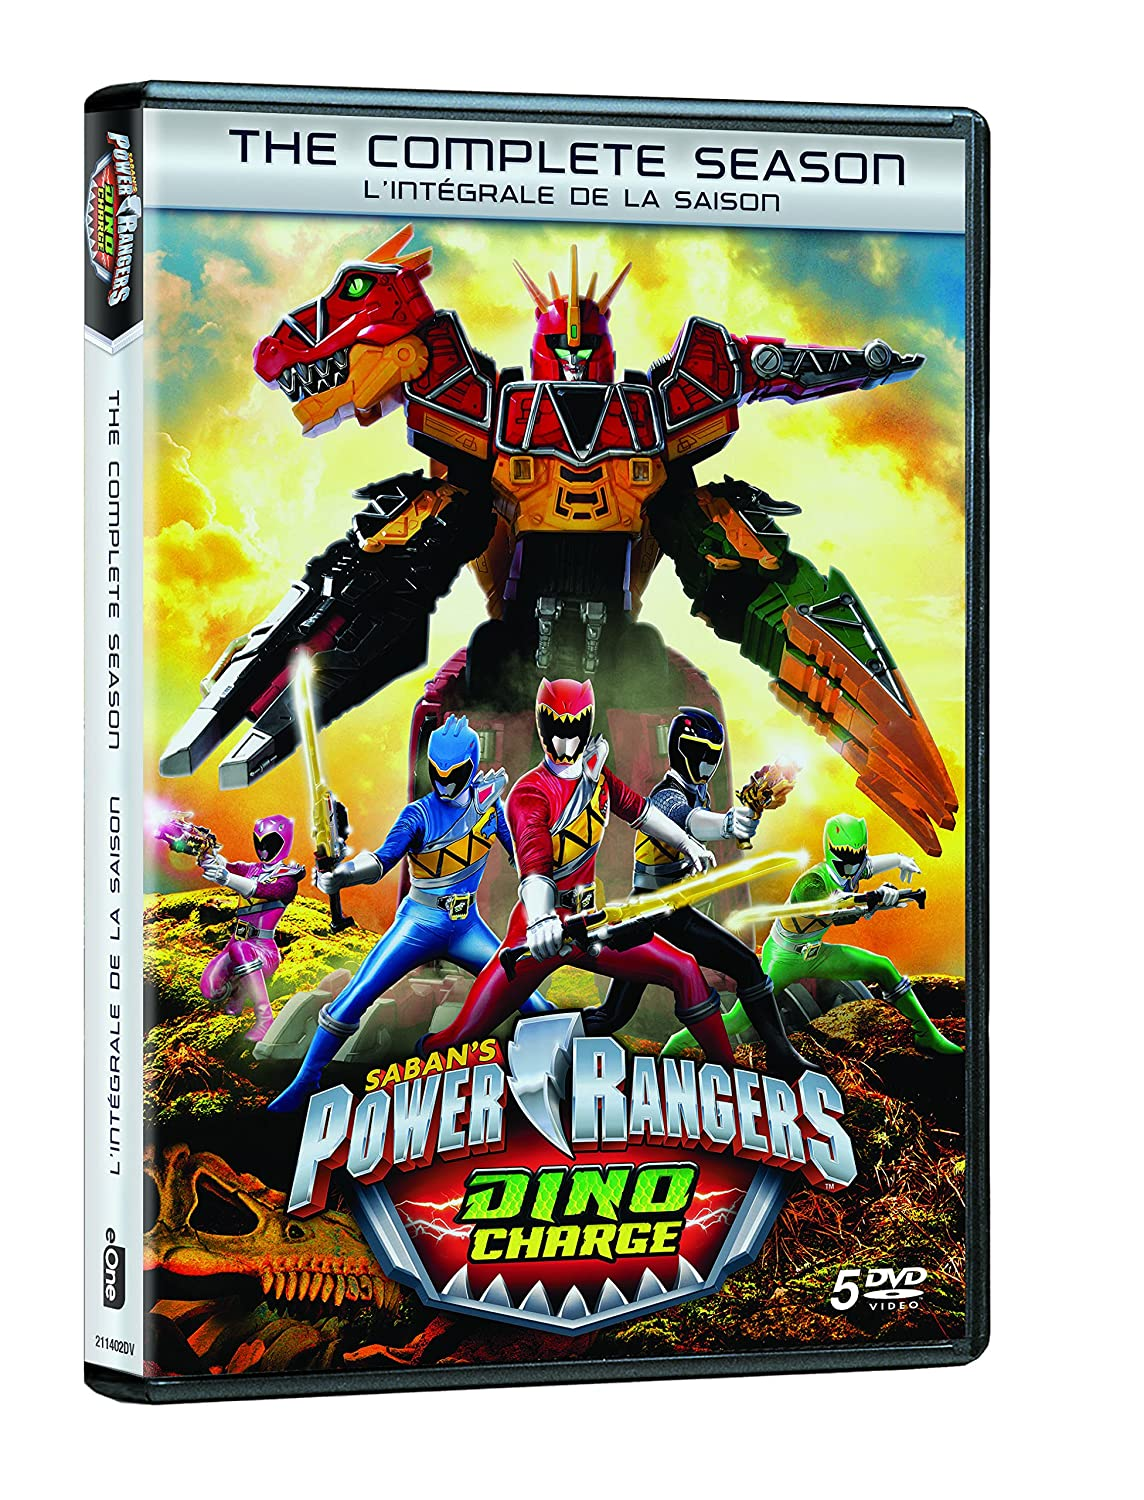 Amazon.com: Power Rangers: Dino Charge (The Complete Season ...